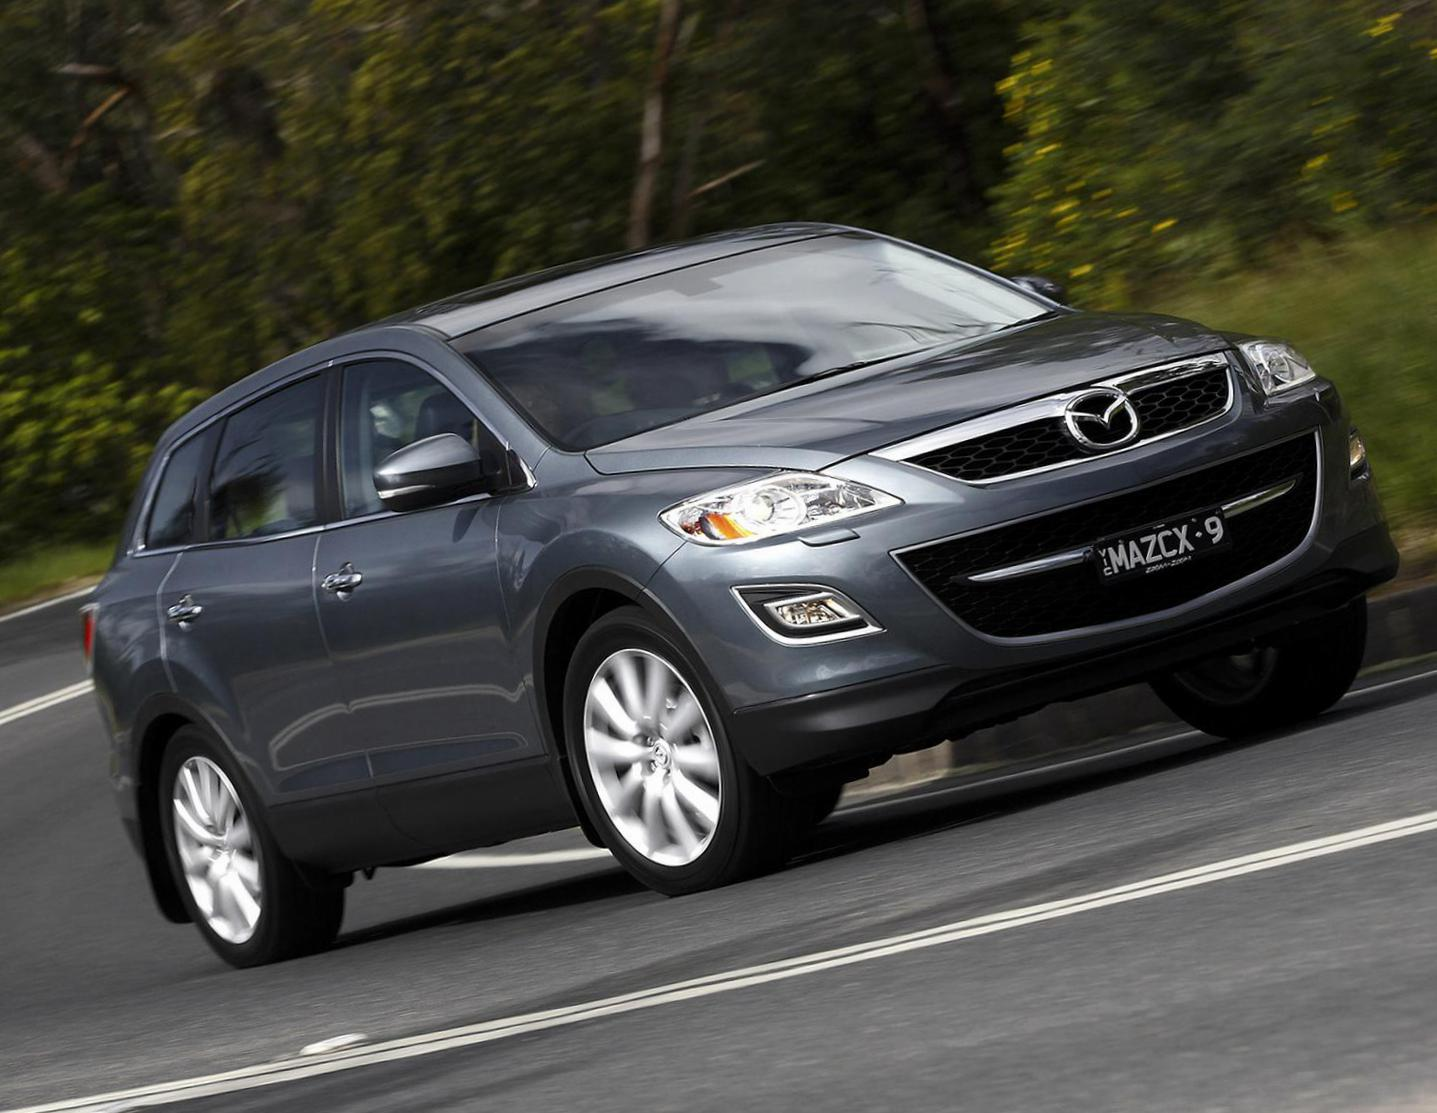 Mazda CX-9 Specifications wagon